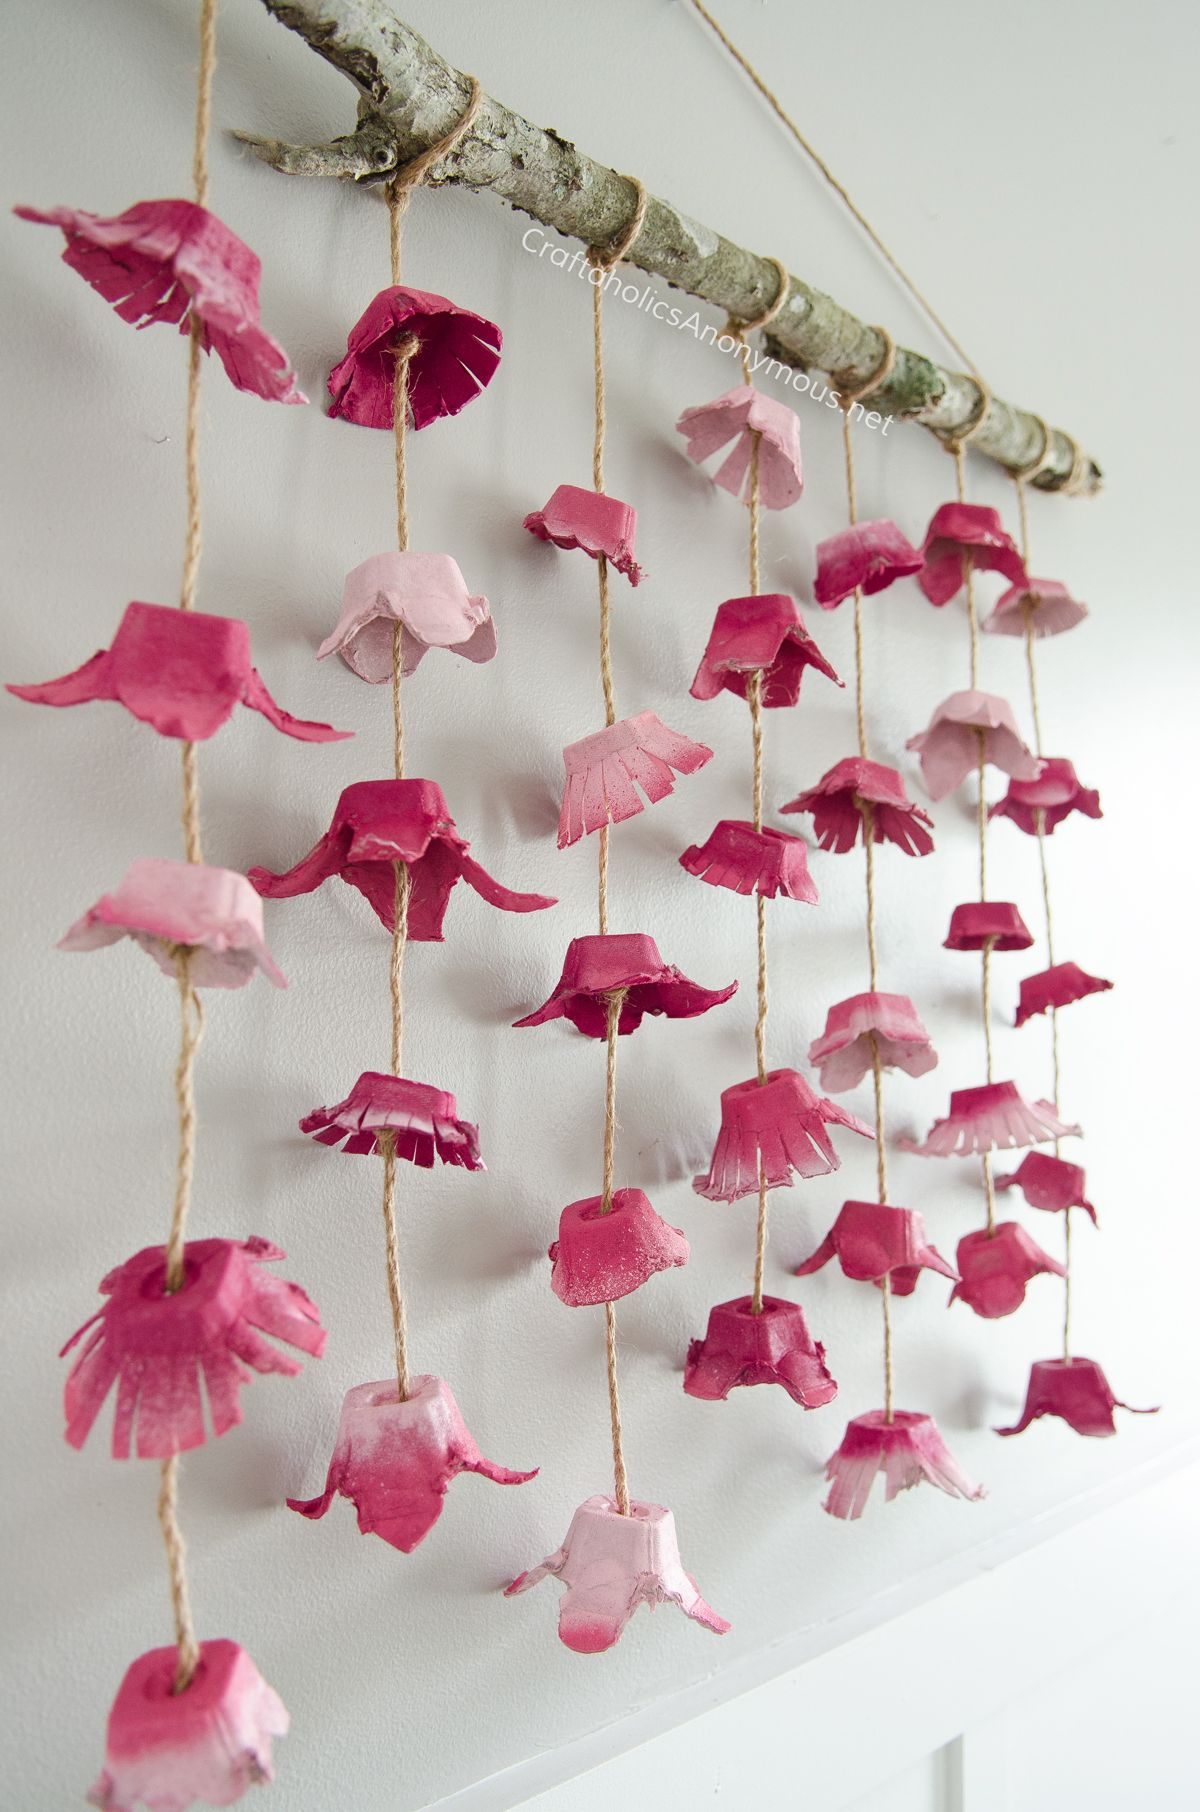 Boho Flower Wall Hanging made from Egg Cartons Flower